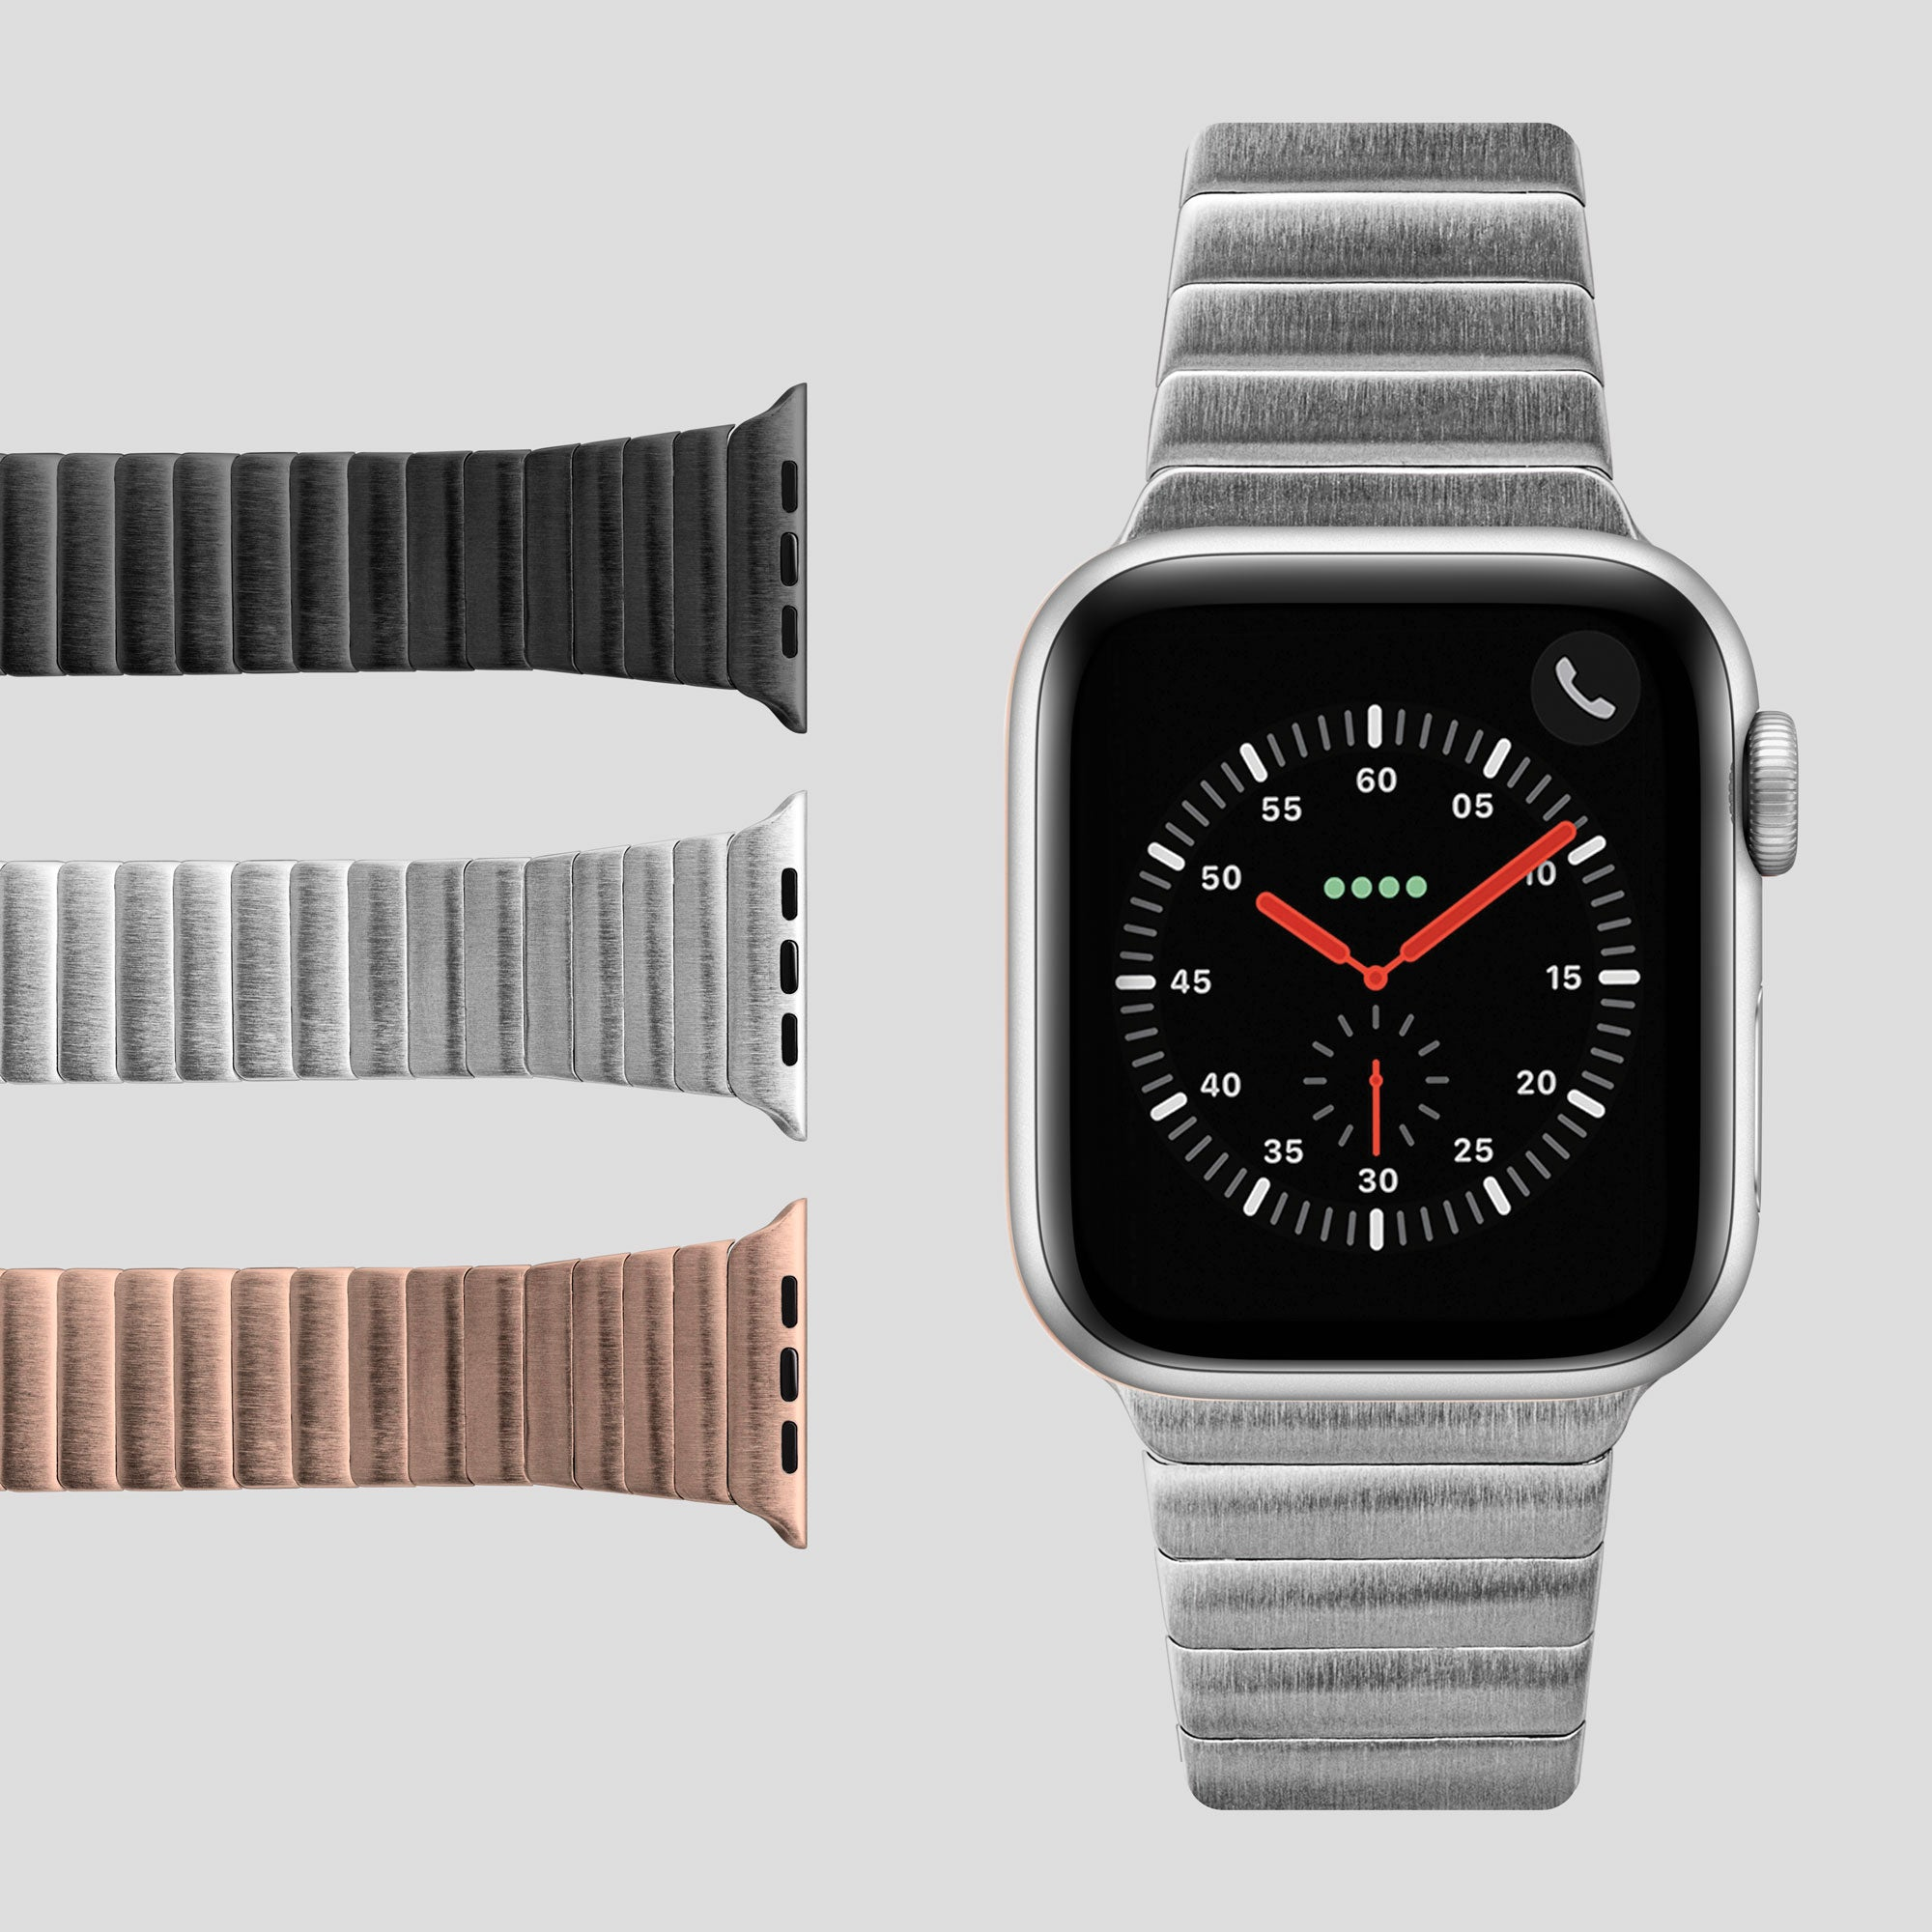 LINKS Watch Strap for Apple Watch Series 1/2/3/4/5